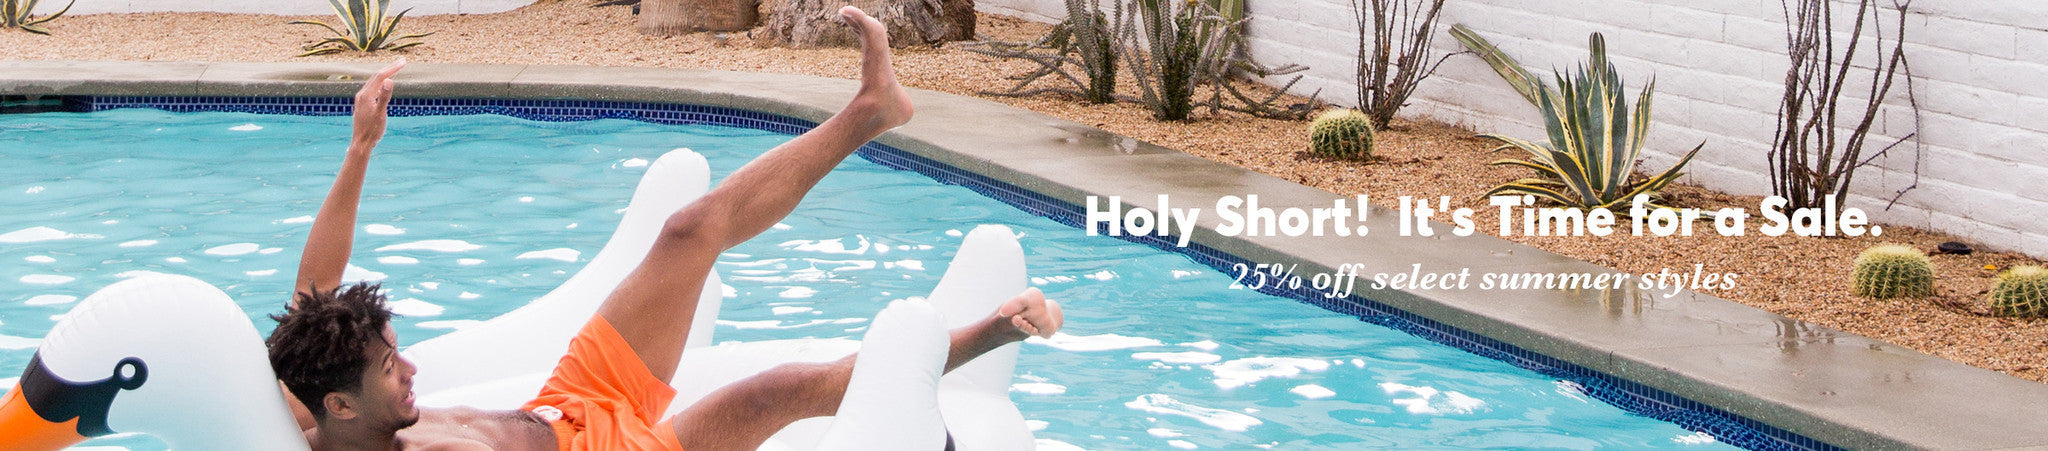 Holy Short Co-ed Summer Sale